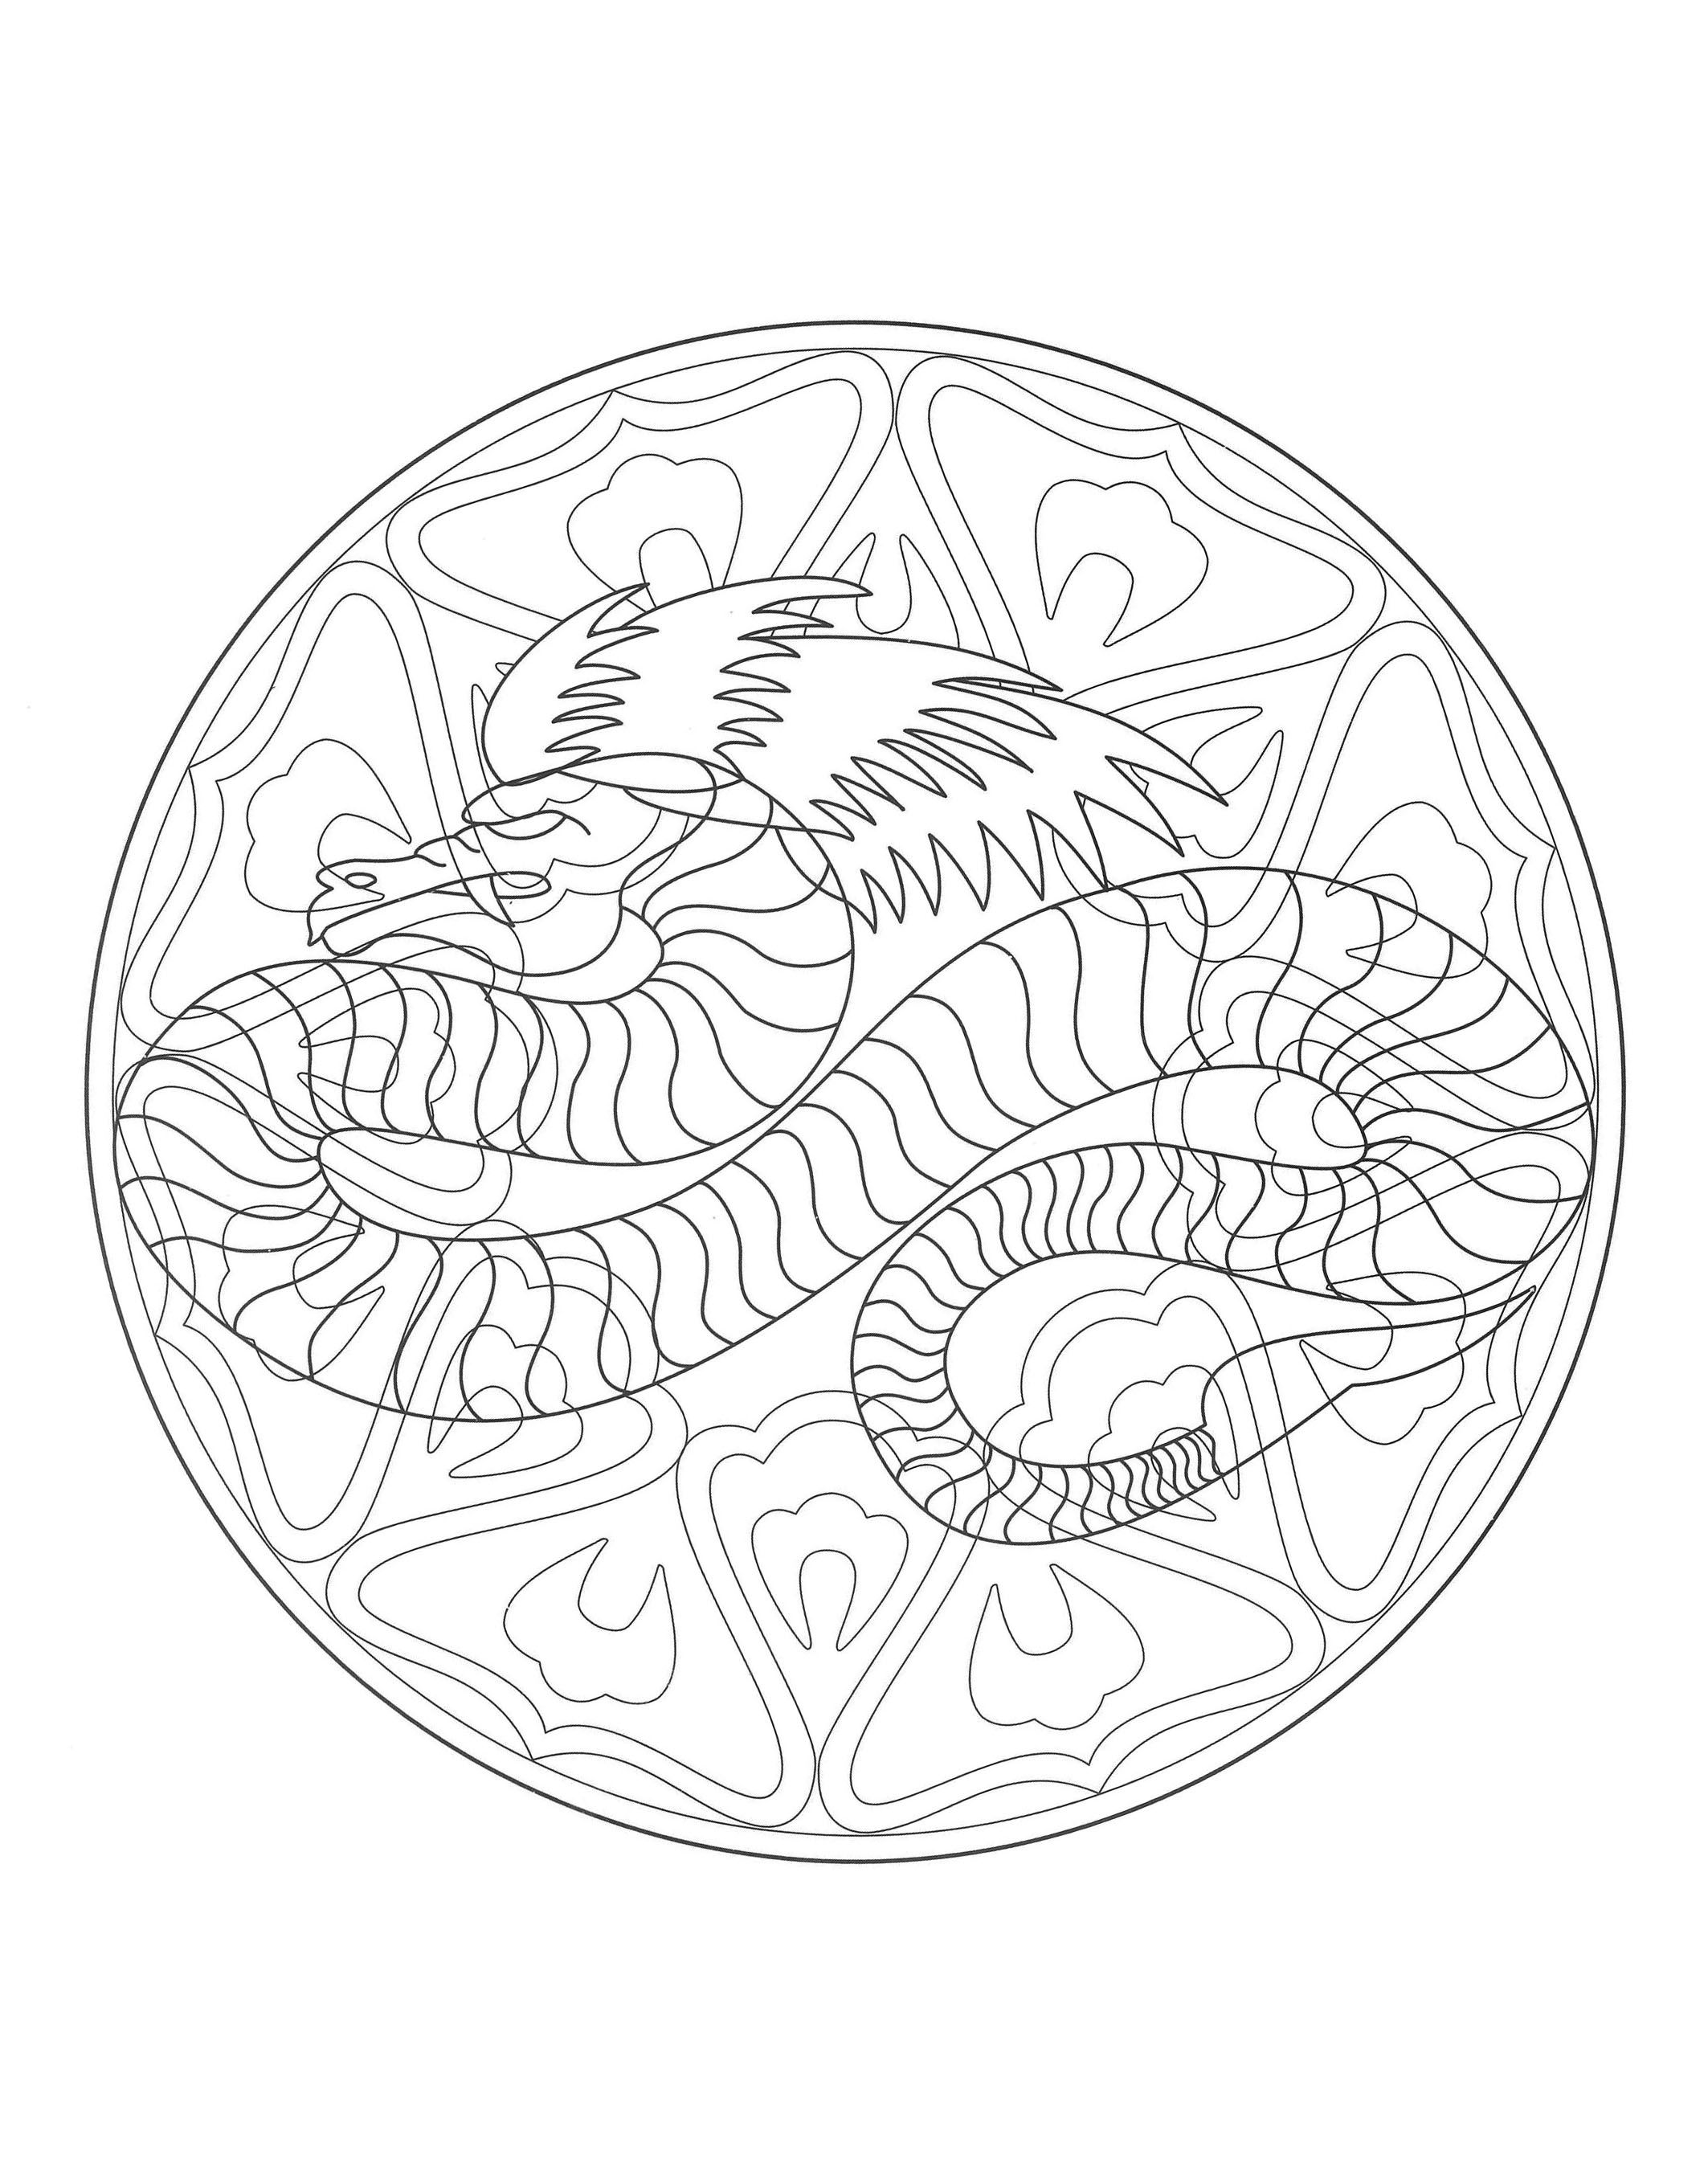 free mandala coloring page representing a dragon to download on www coloring